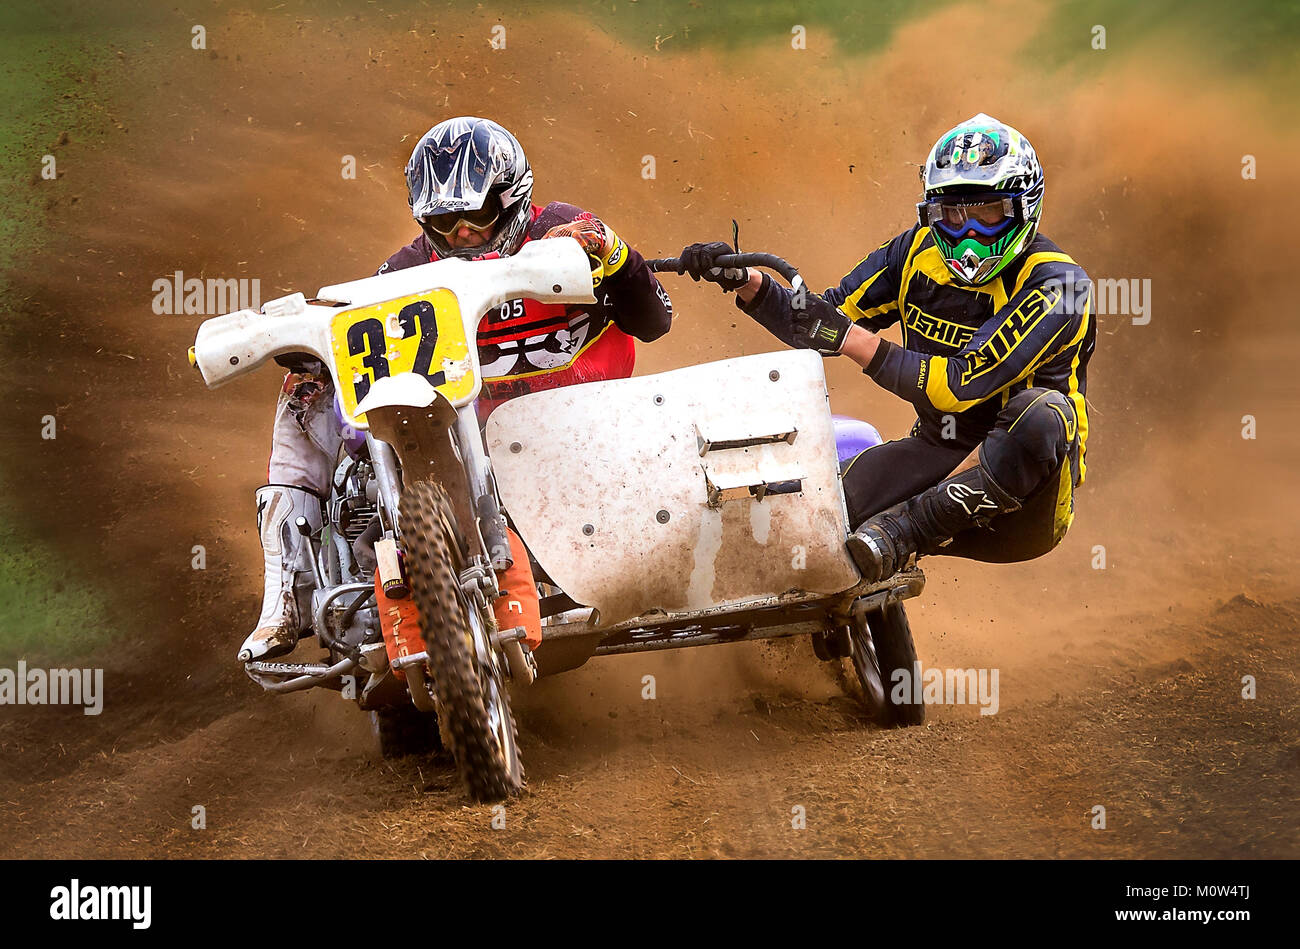 A scramble bike with side-car, rider and passanger, at speed raising a dramatic cloud of dust and heading straight - Stock Image